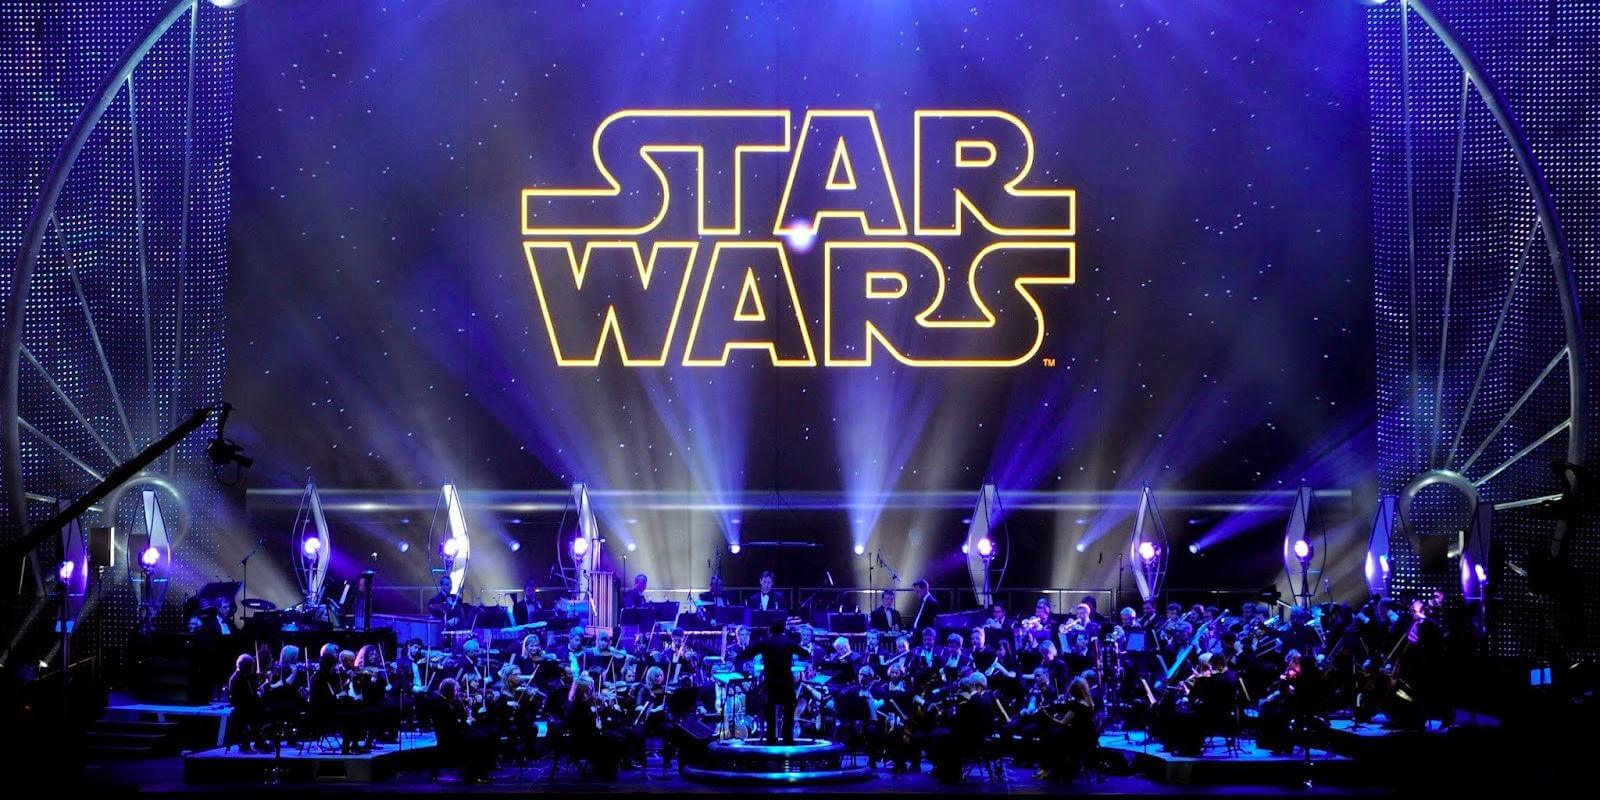 Star Wars: A New Hope Live in Concert with the Colorado Symphony | The Denver Ear